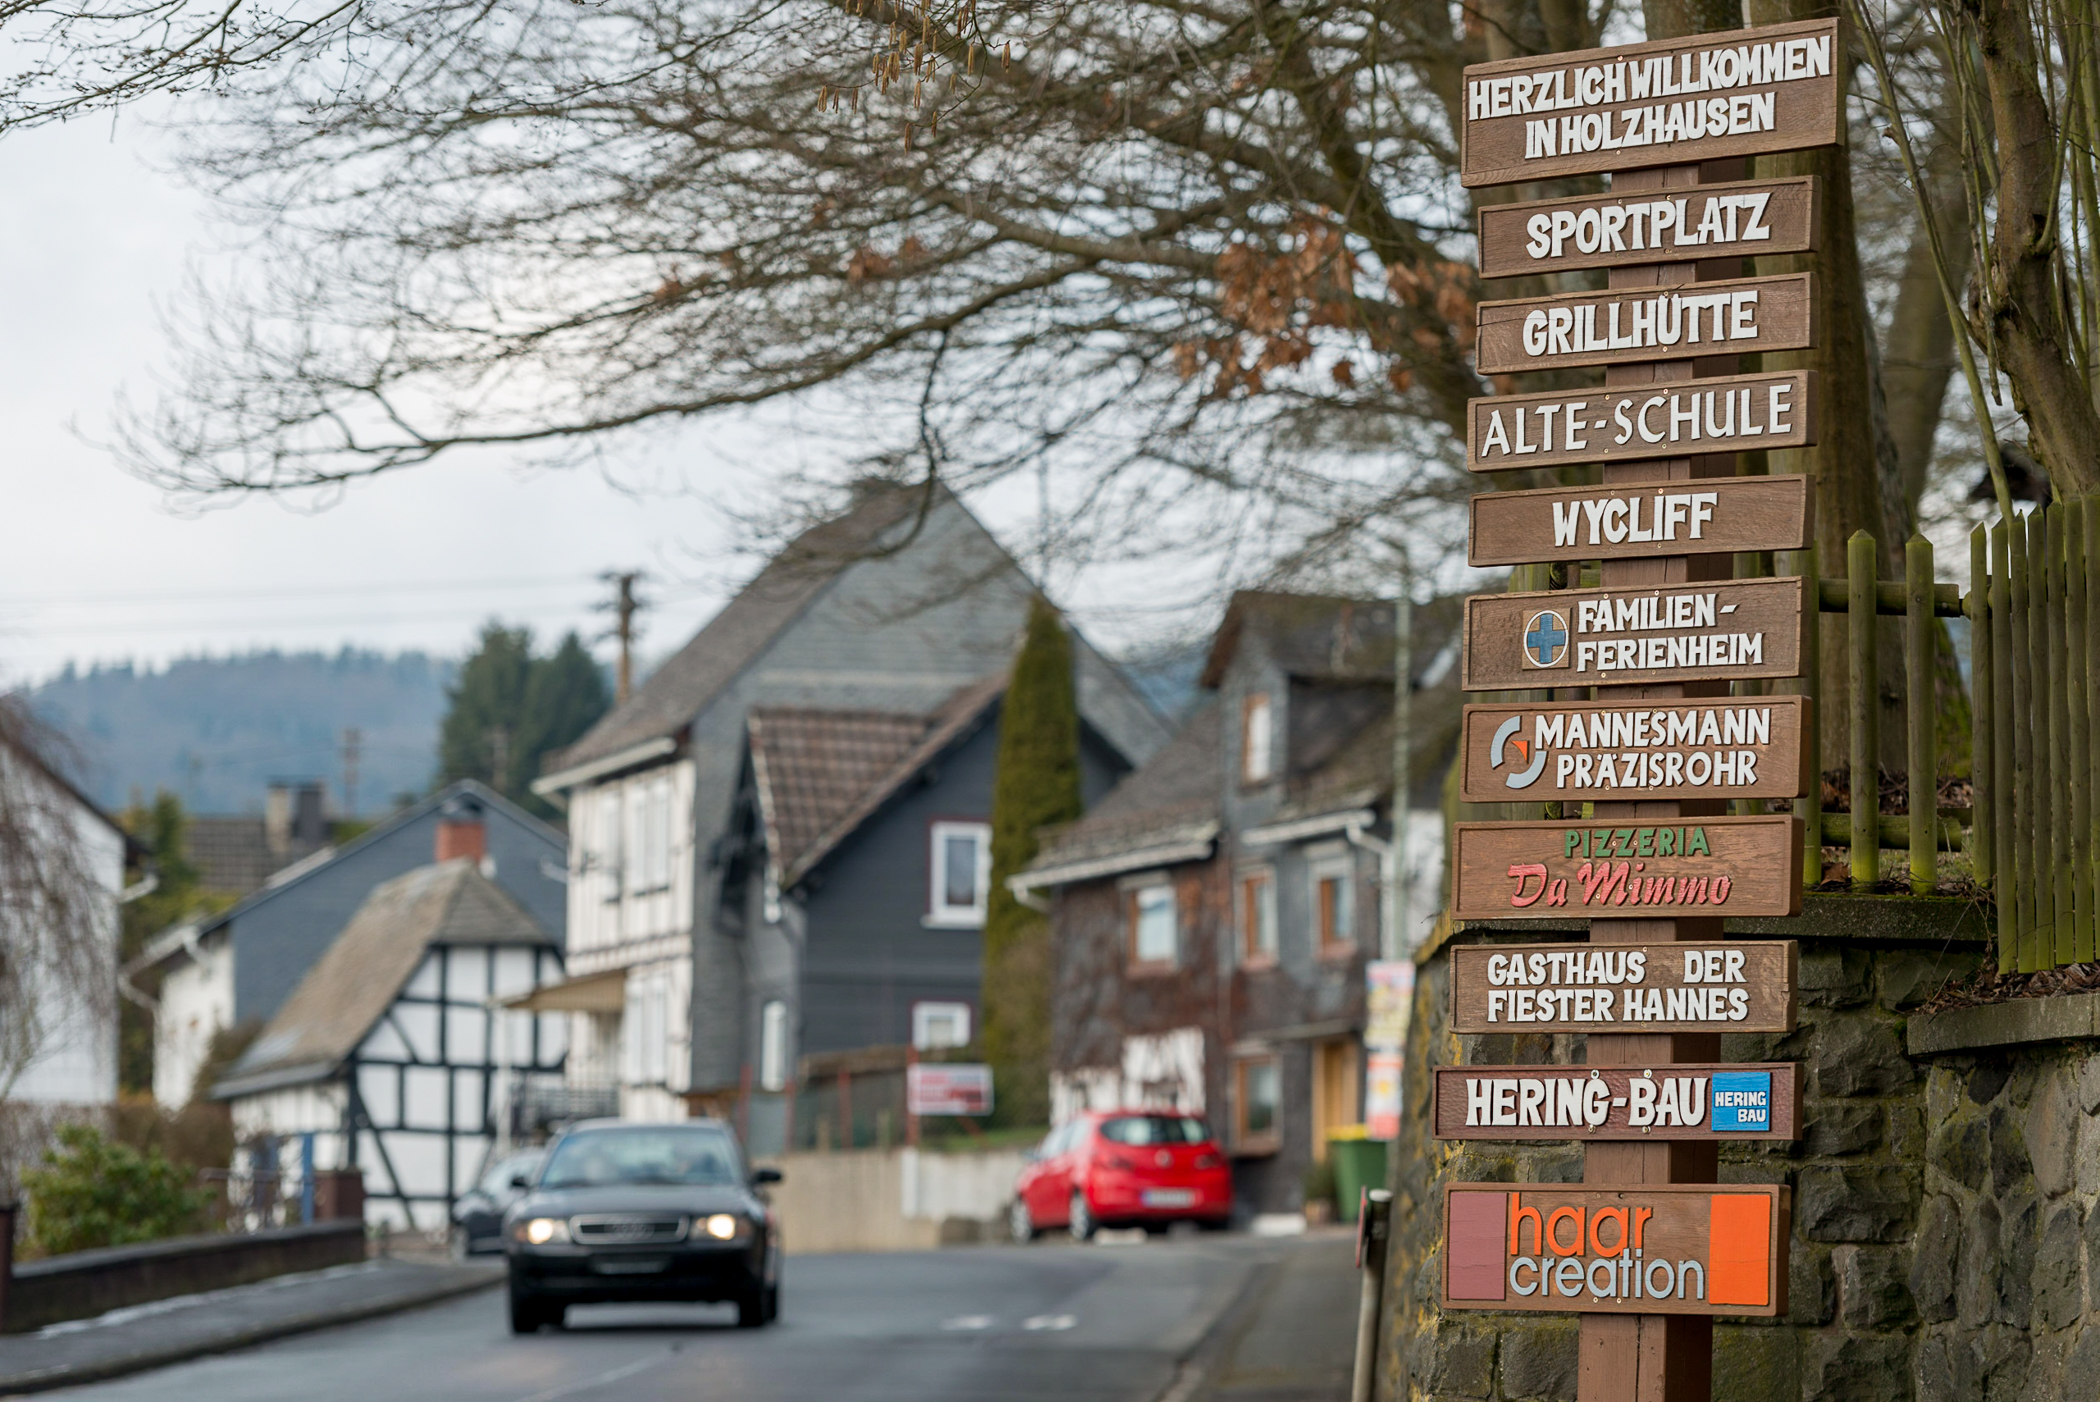 Information signs located along one of the main entrances to Holzhausen, Germany, tell drivers about the various firms and organizations located in the village. Typical half-timbered and slate-sided homes are visible in the background.